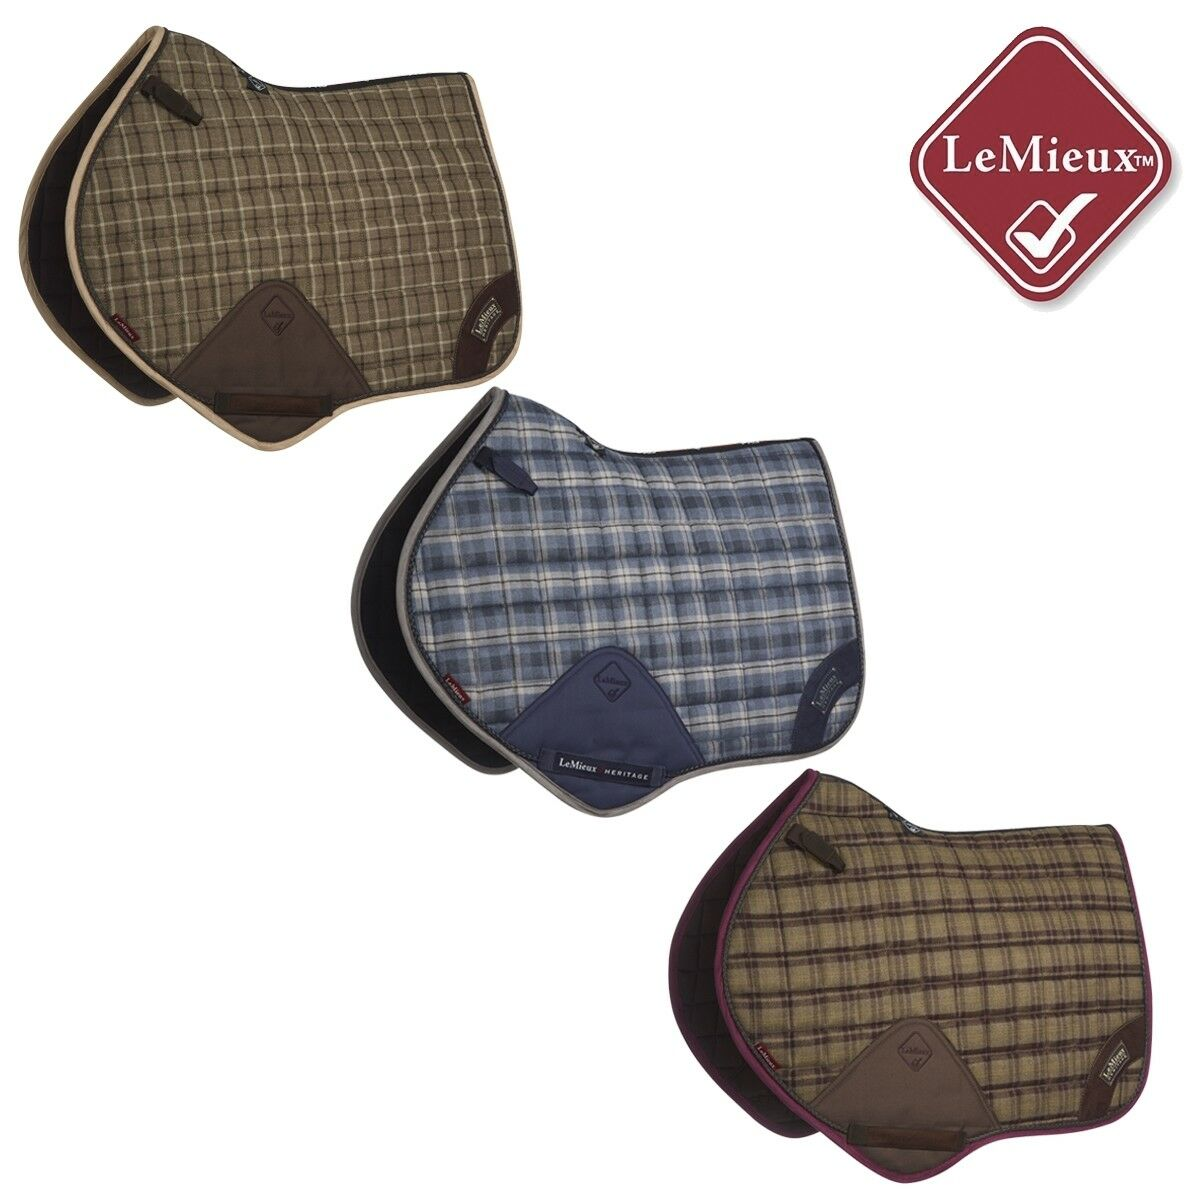 LeMieux Heritage Close Contact Square - Free UK Shipping   save up to 30-50% off